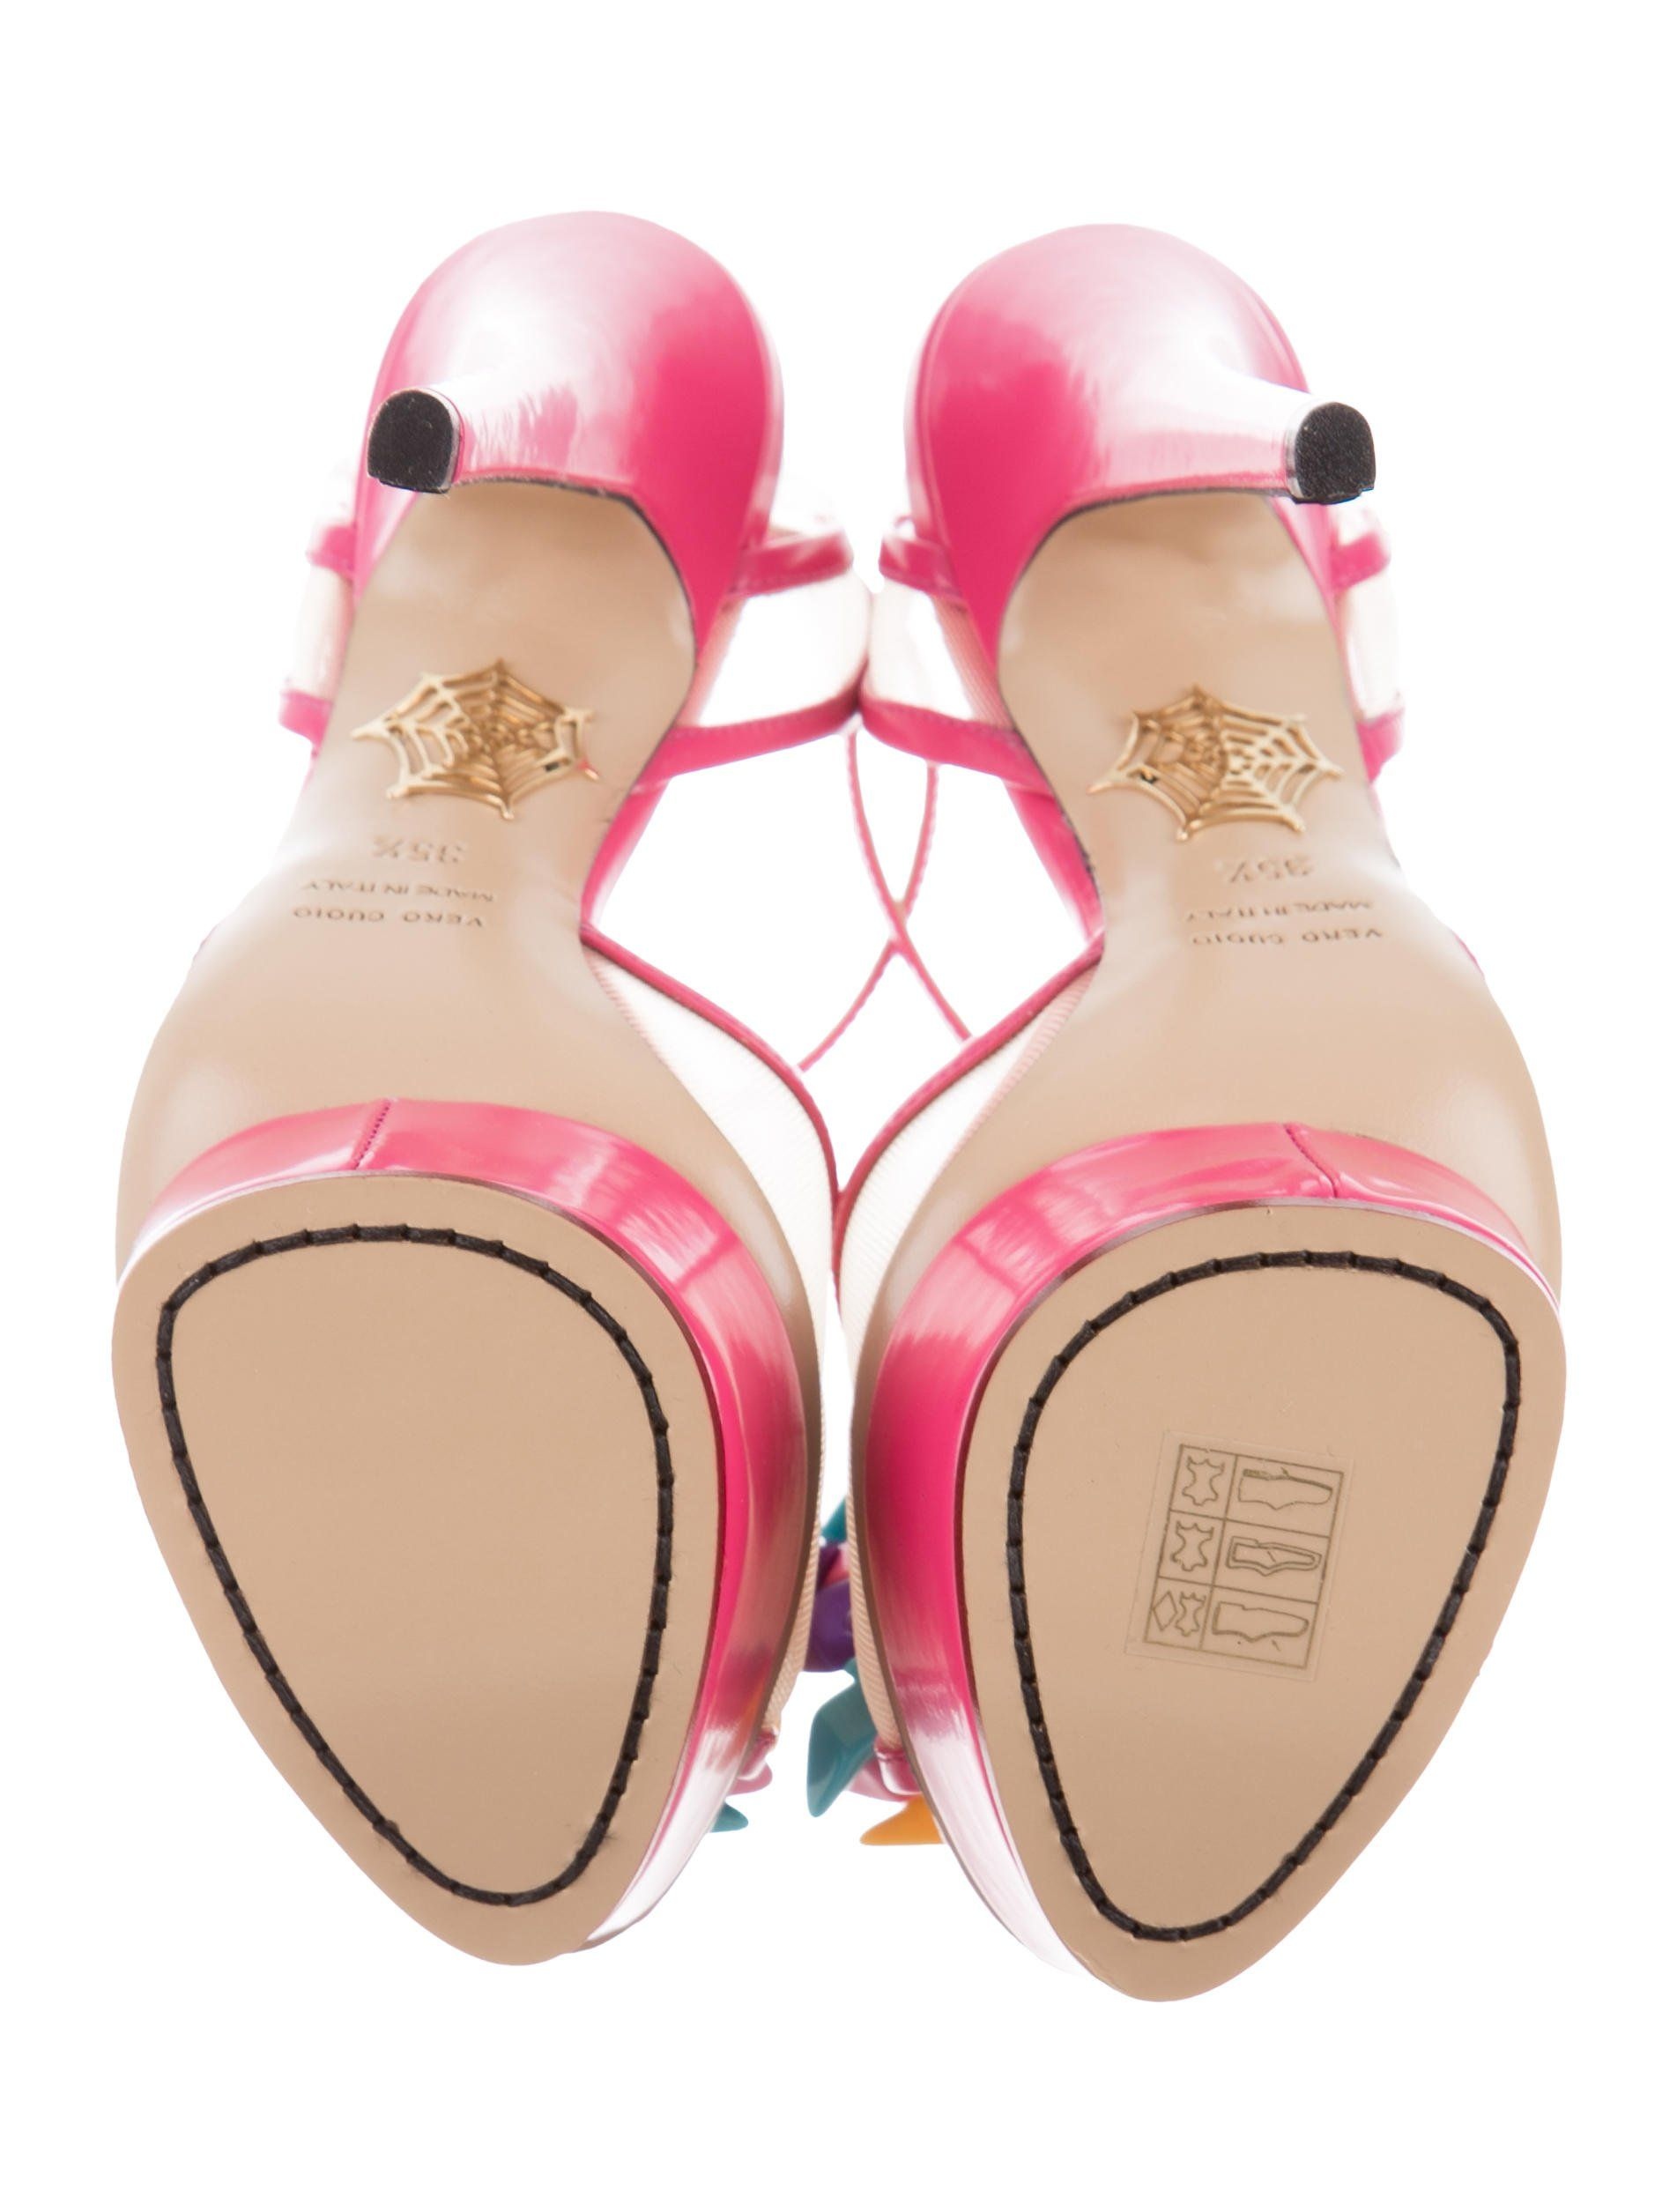 ba416175ef99 Pink patent leather Charlotte Olympia Barbie platform sandals with mesh  vamps featuring shoe adornments